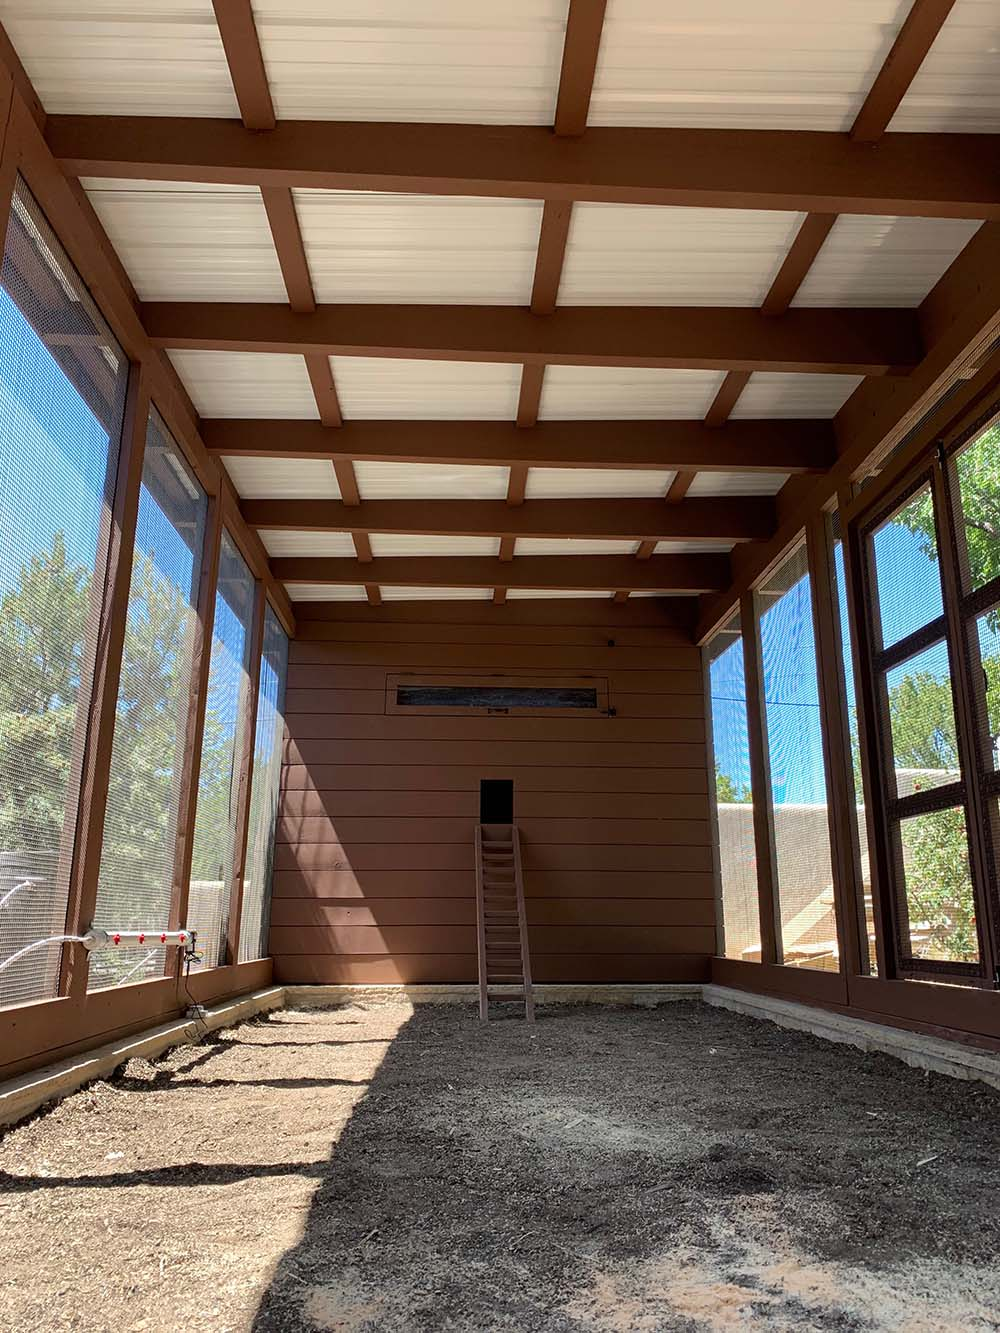 Inside the run of a modern custom chicken coop in Santa Fe, NM